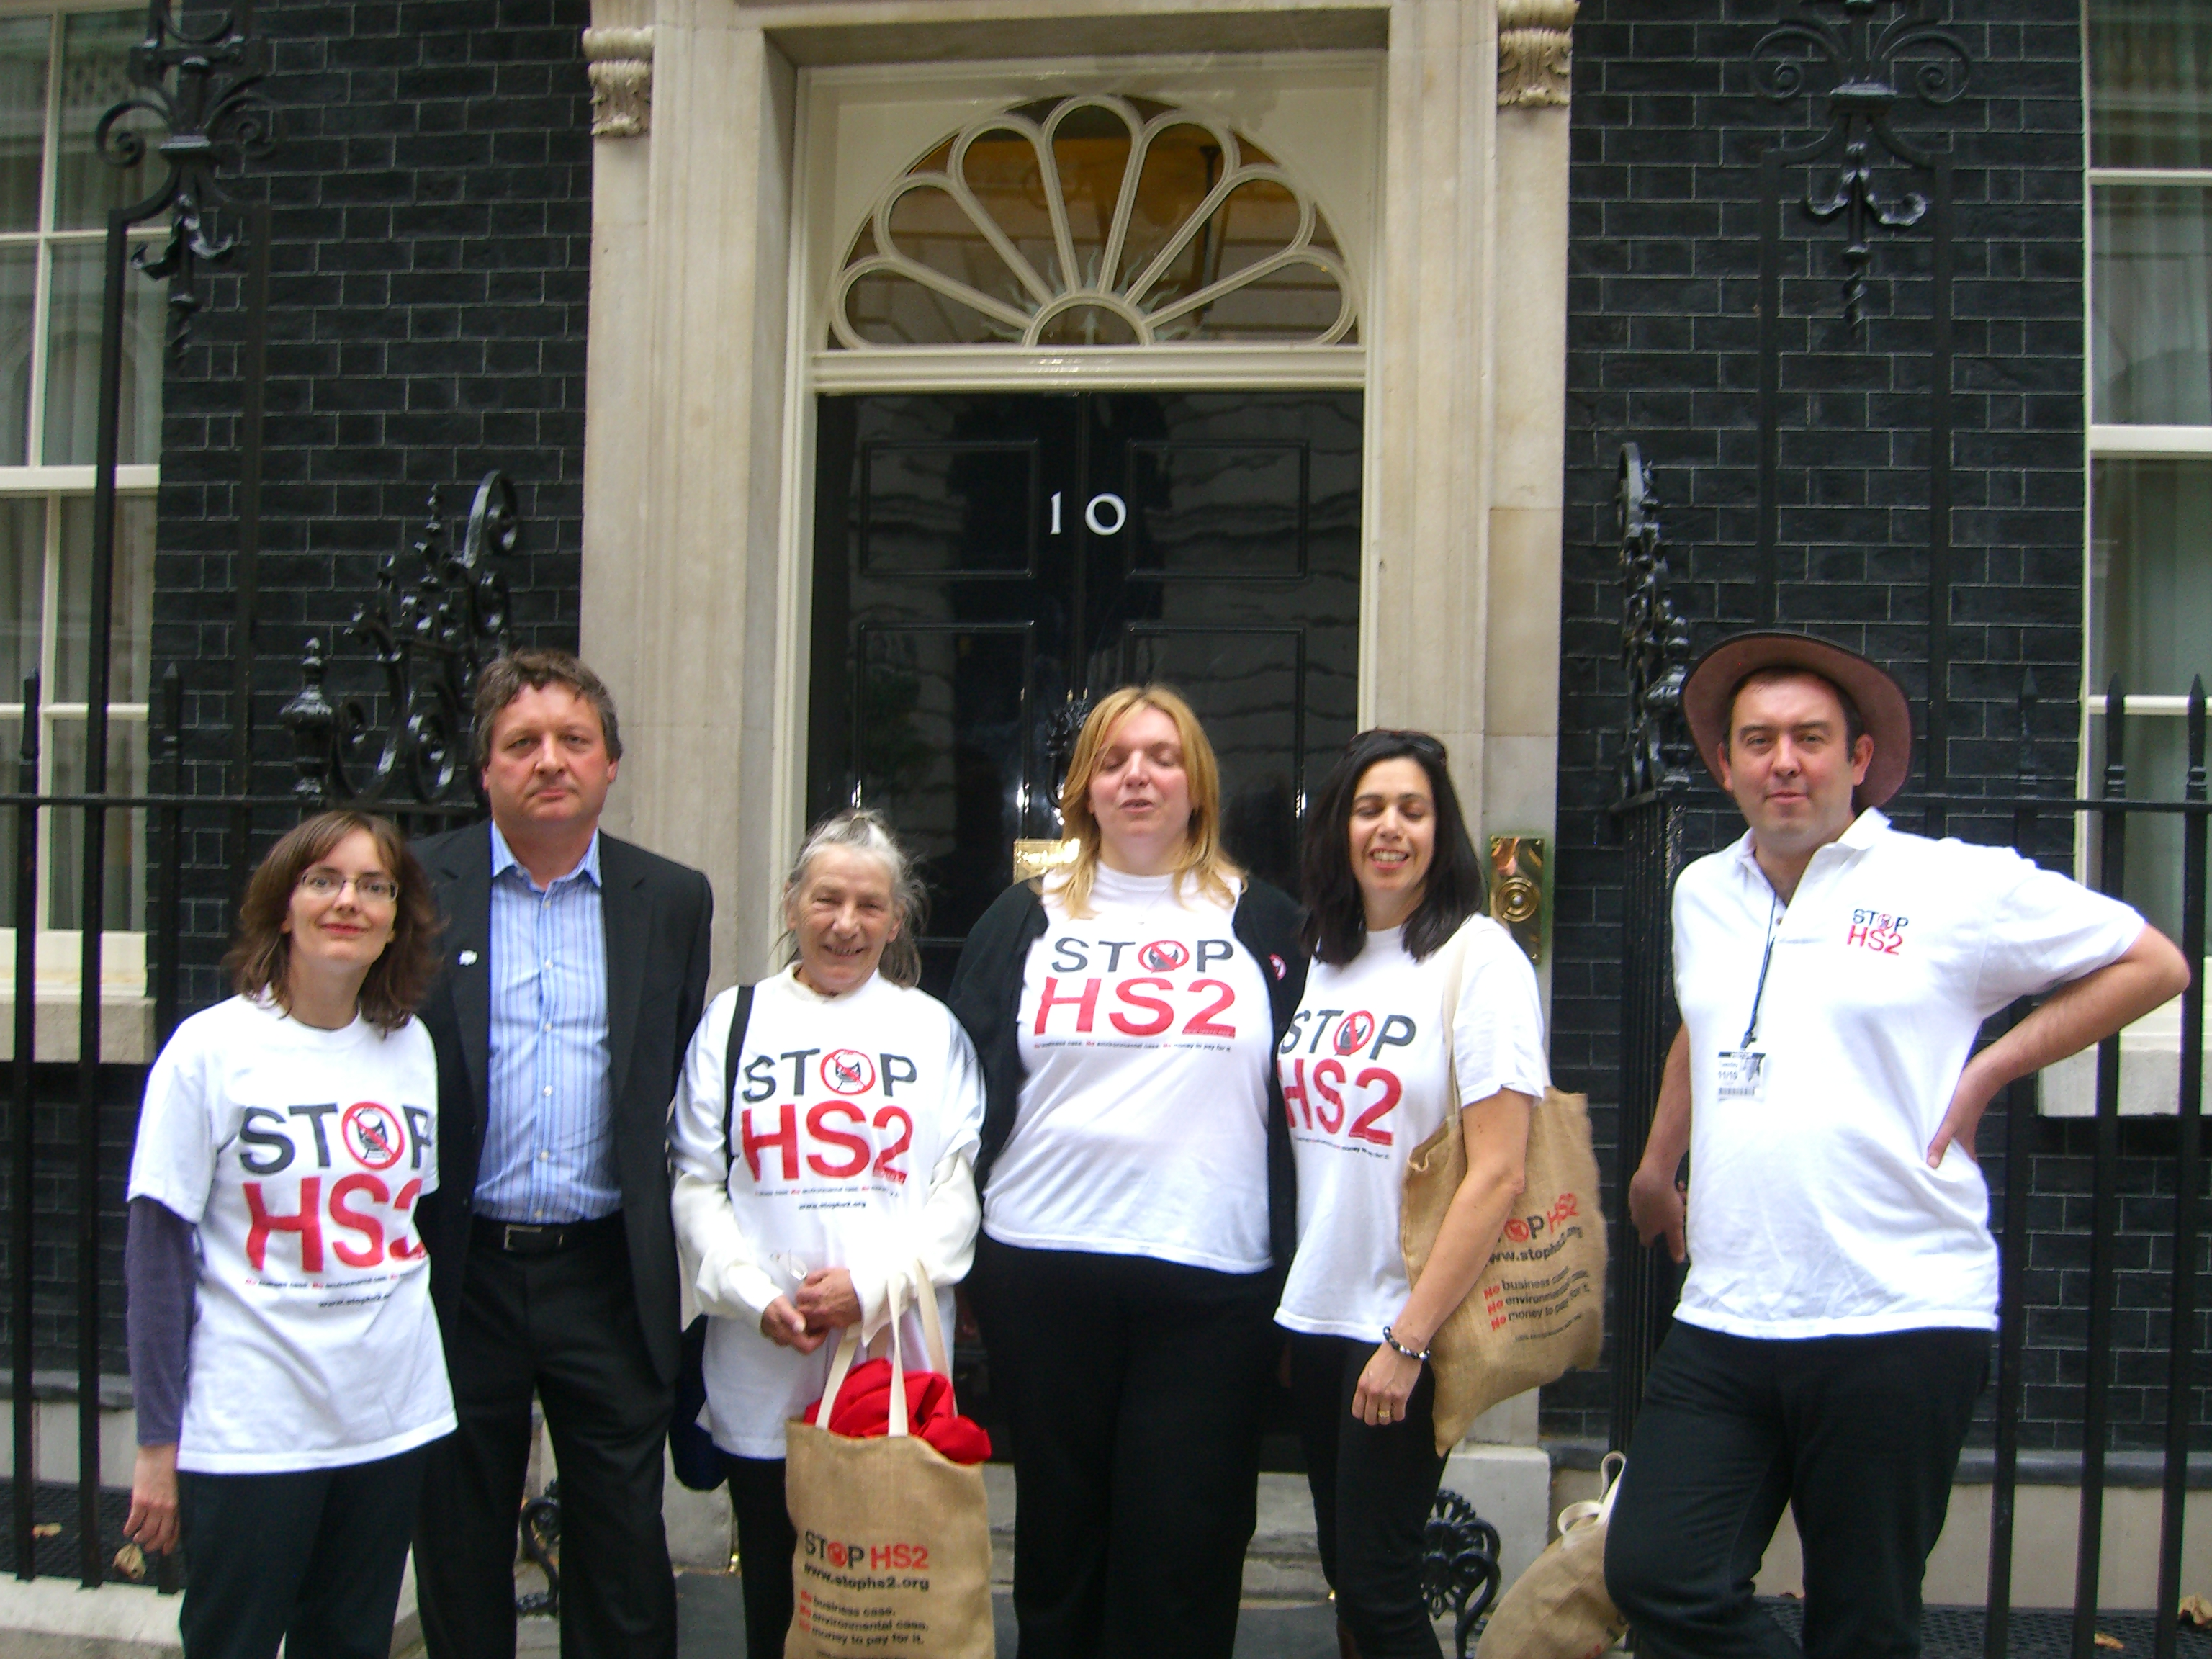 Stop Hs2 campaigners outside 10 Downing Street